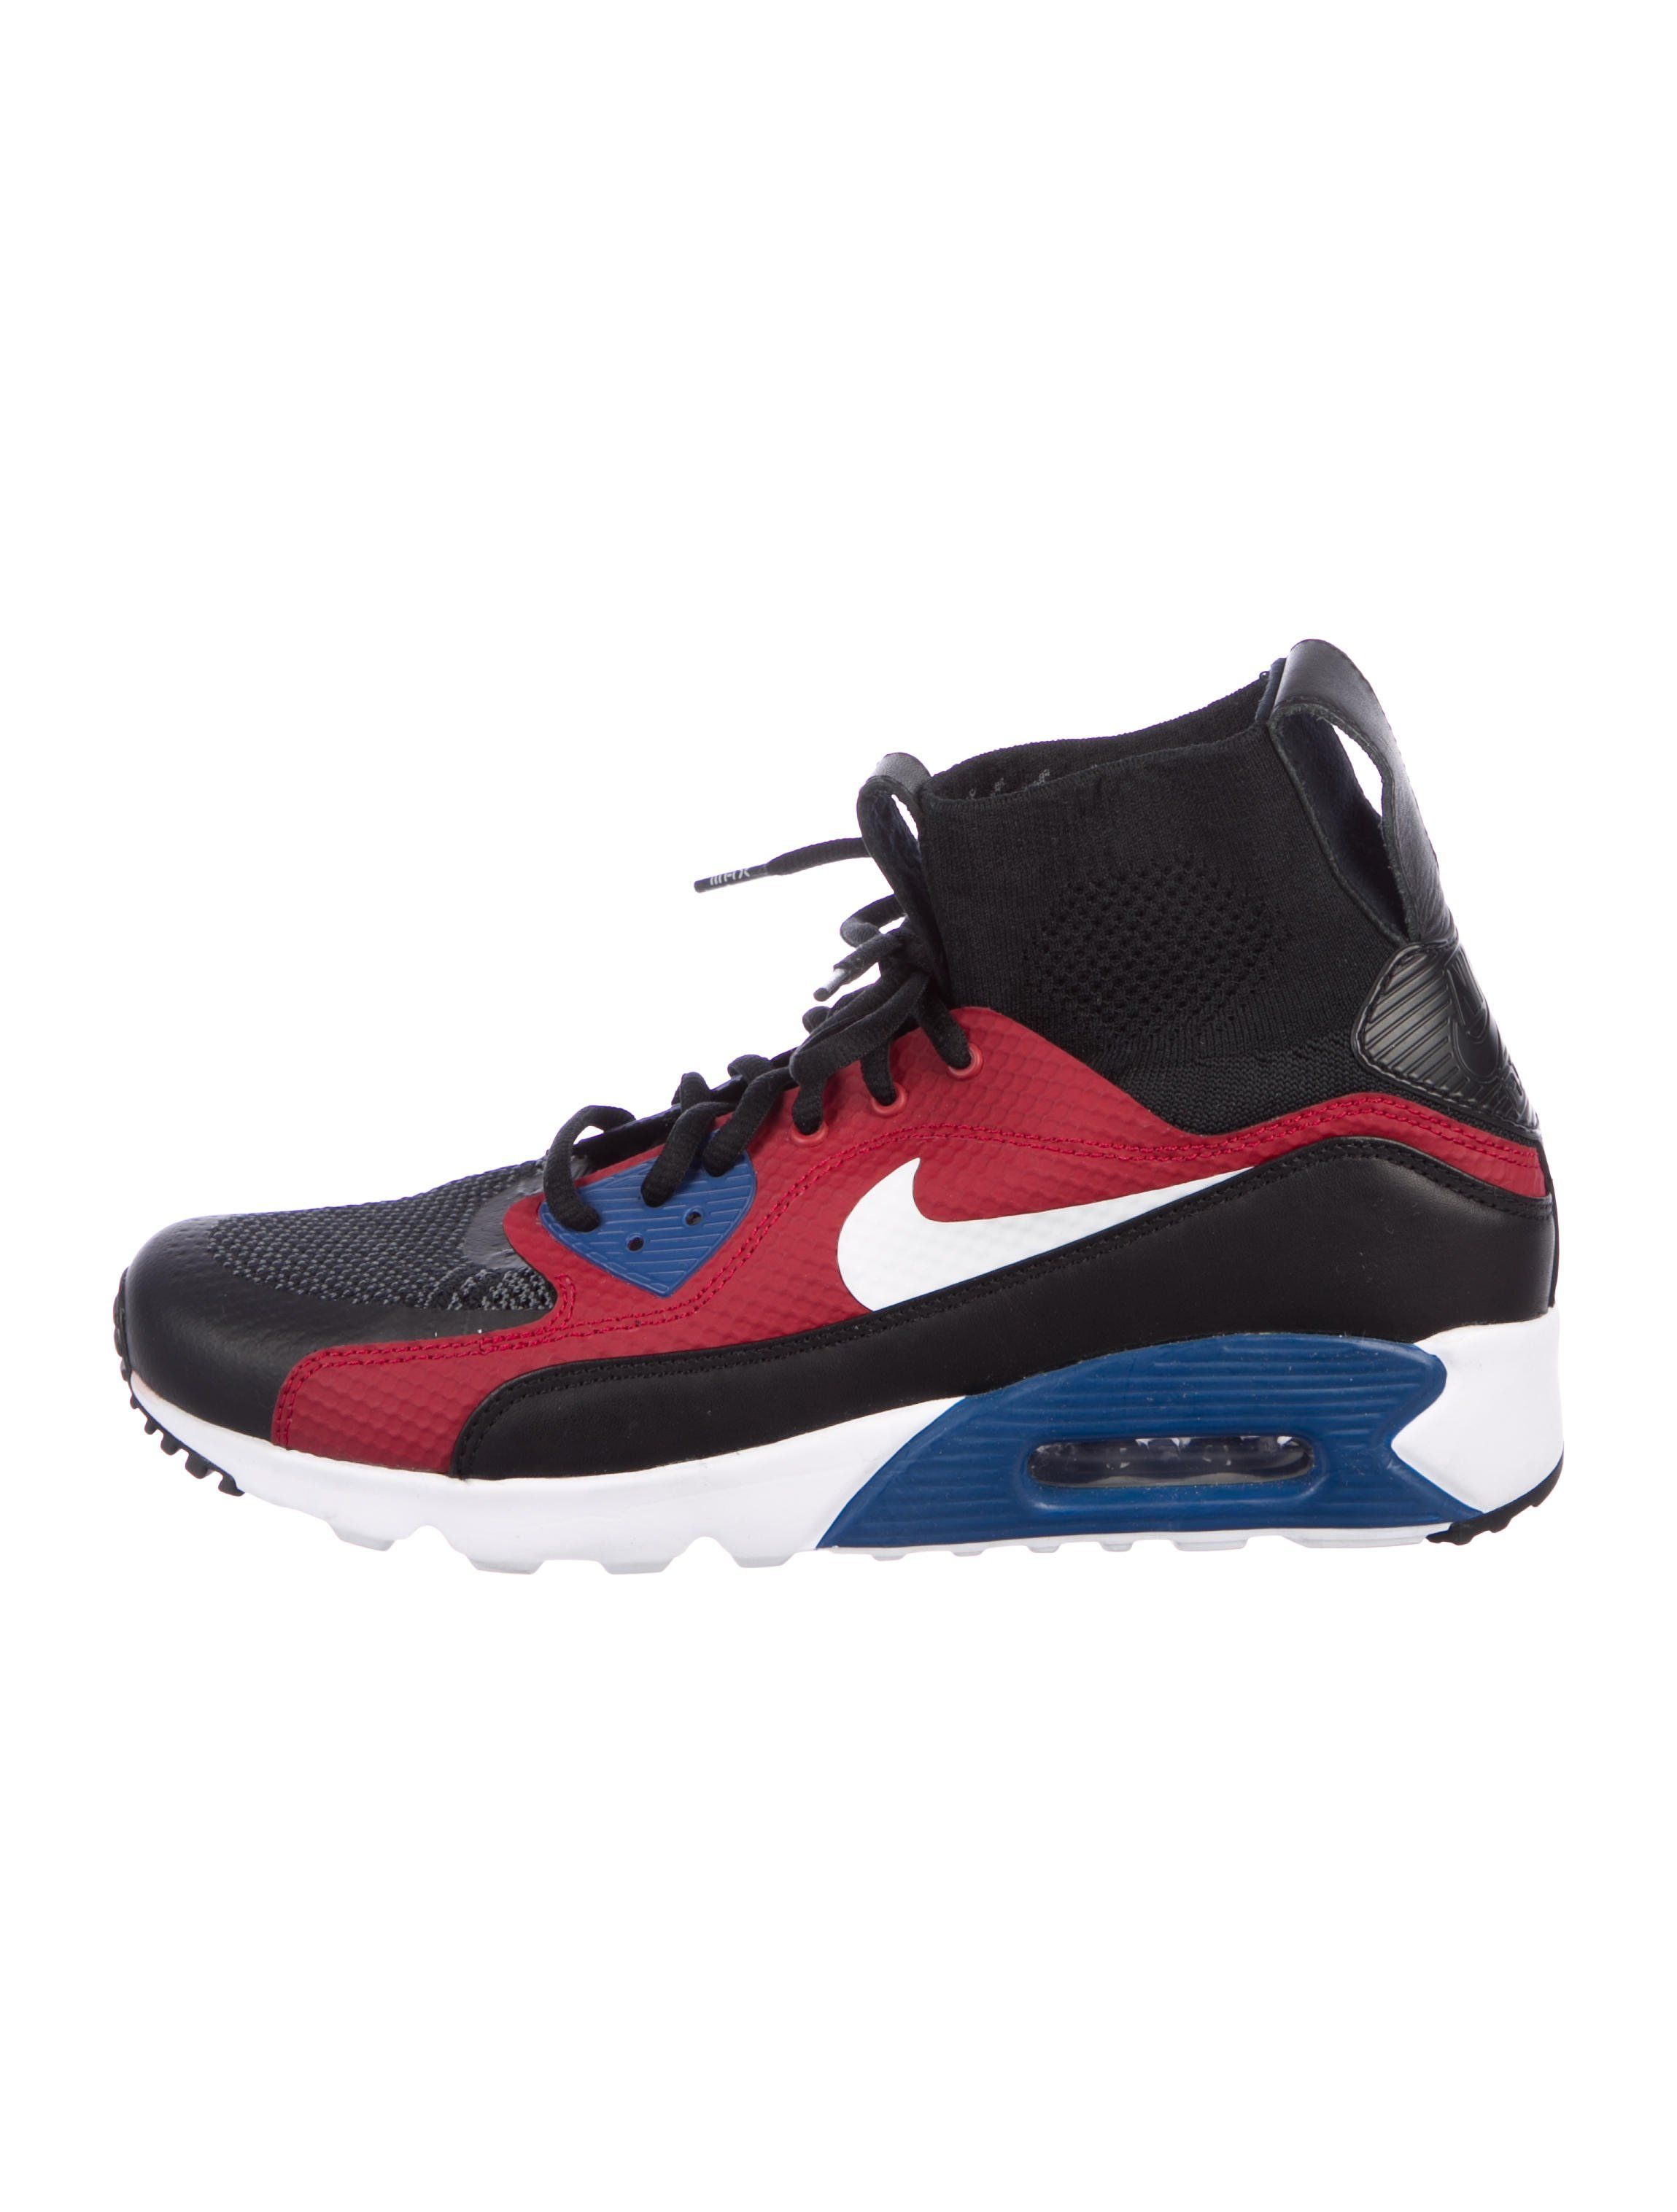 check out 3b3fb 0ab1d Air Max 90 Ultra Superfly Tinker Hatfield Sneakers ...